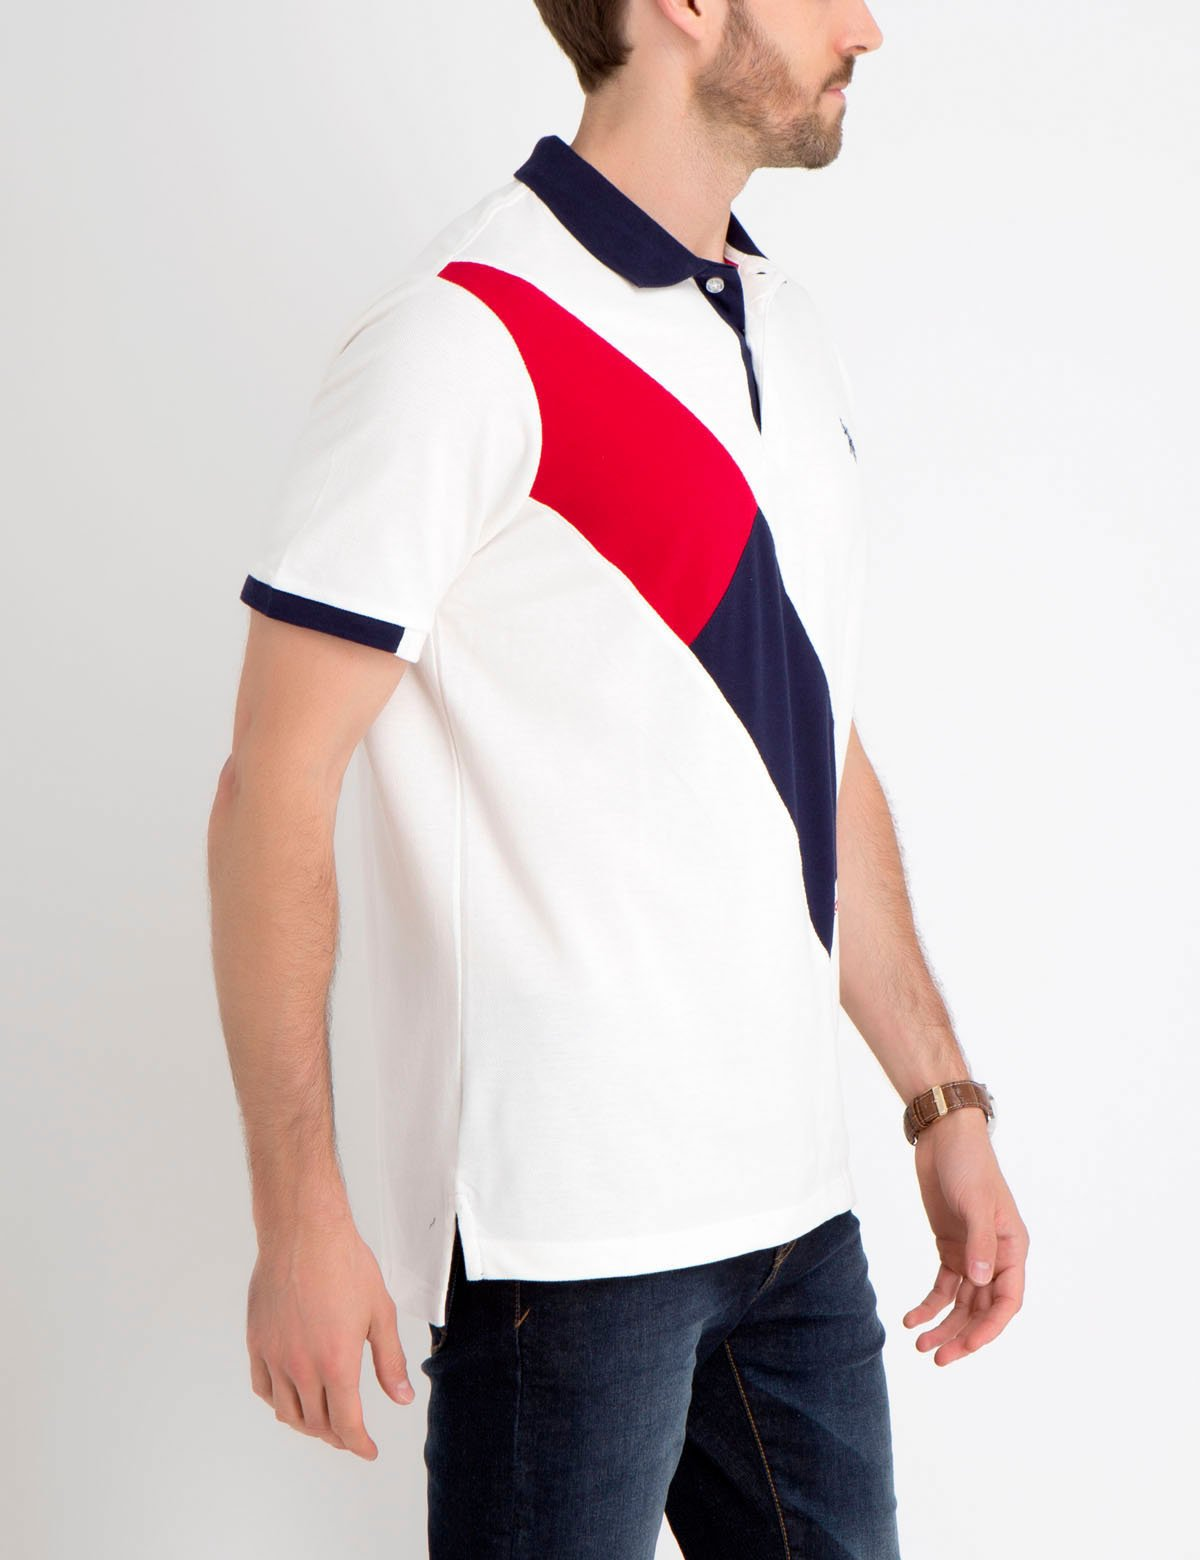 DIAGONAL POLO SHIRT - U.S. Polo Assn.